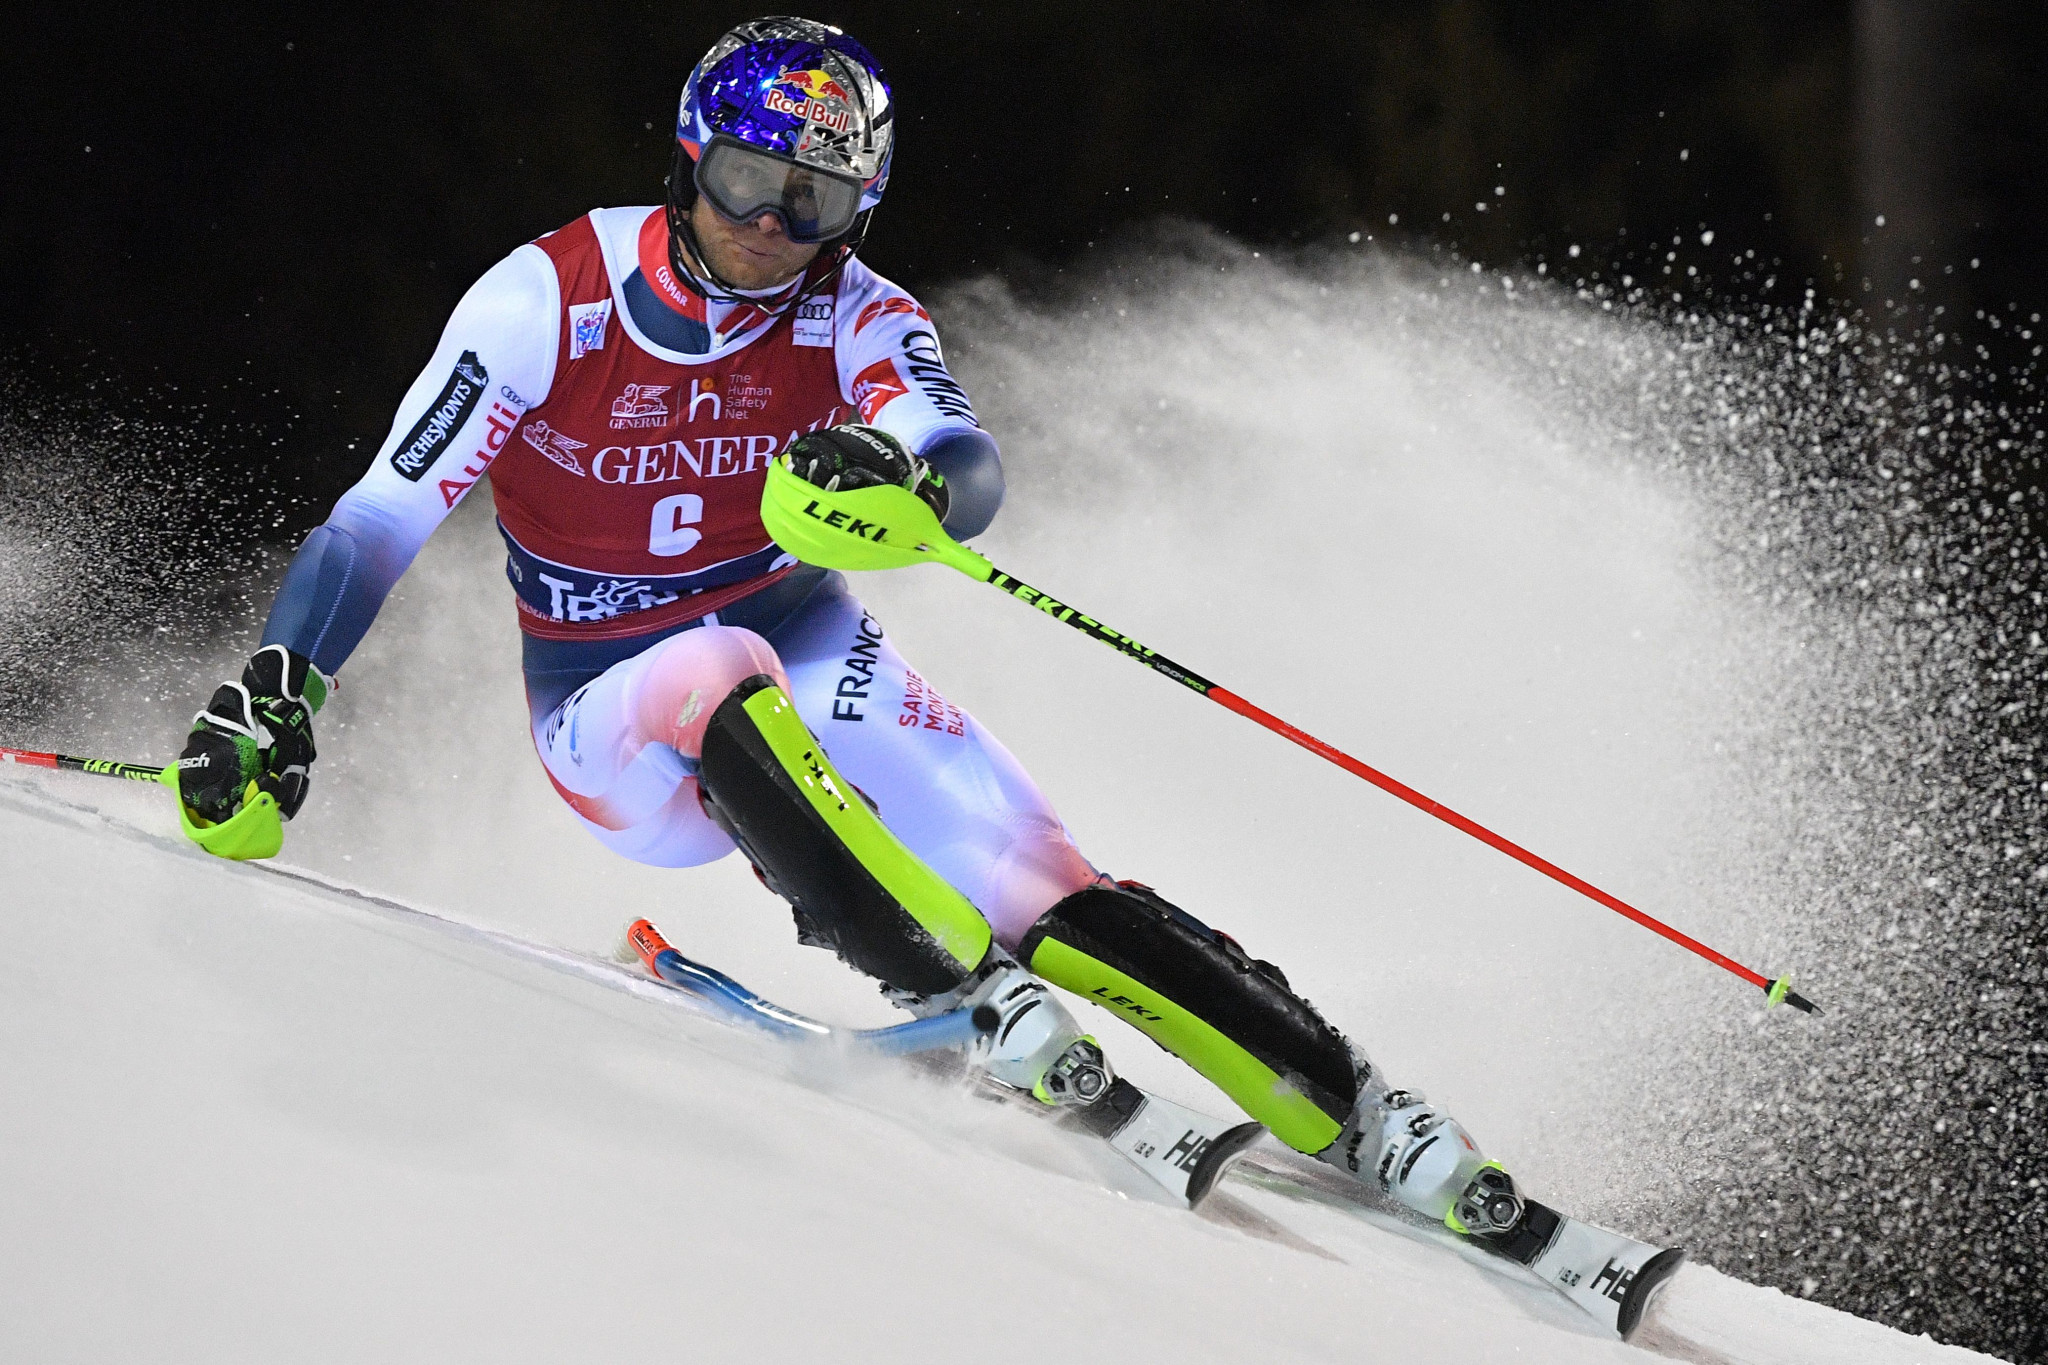 Pinterault to compete at FIS Alpine Ski World Cup event in Abelboden despite stomach bug